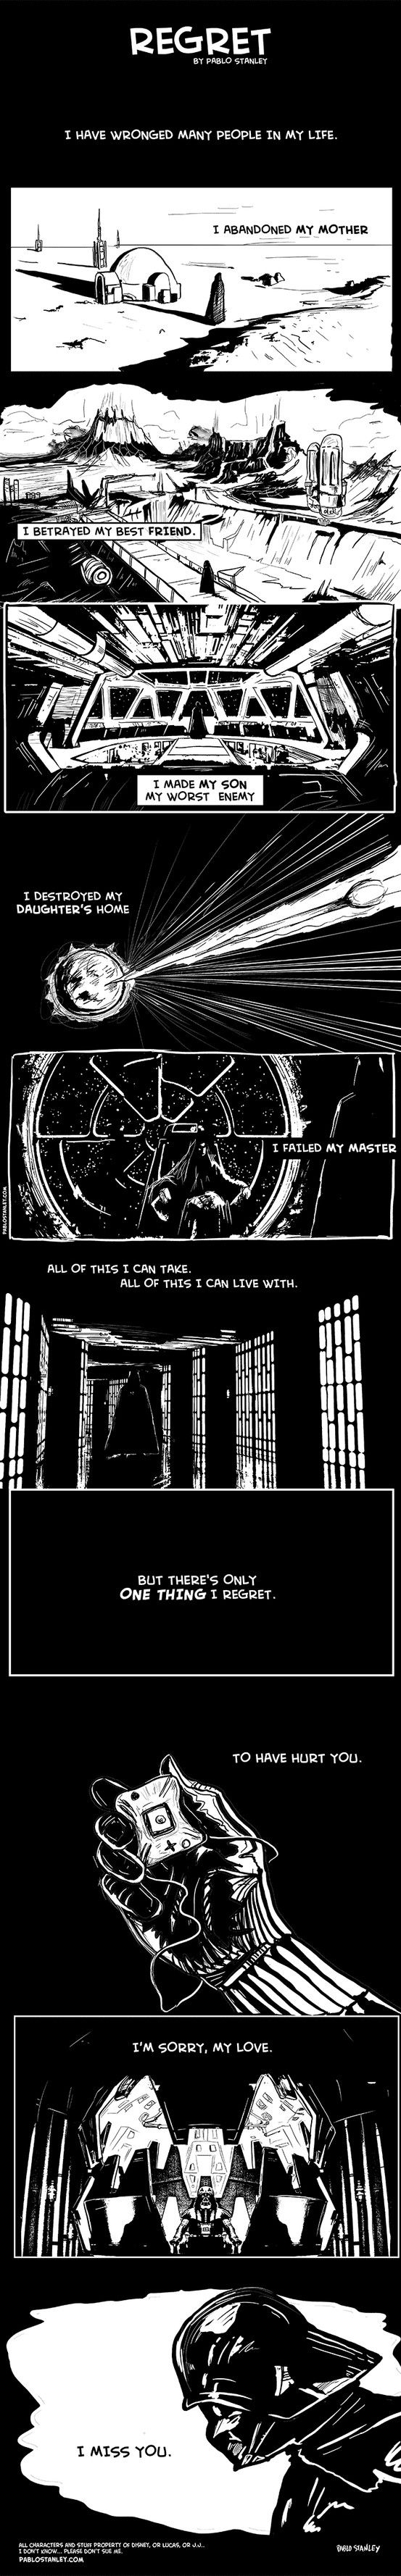 An amazing Star Wars Comic by Pablo Stanley.